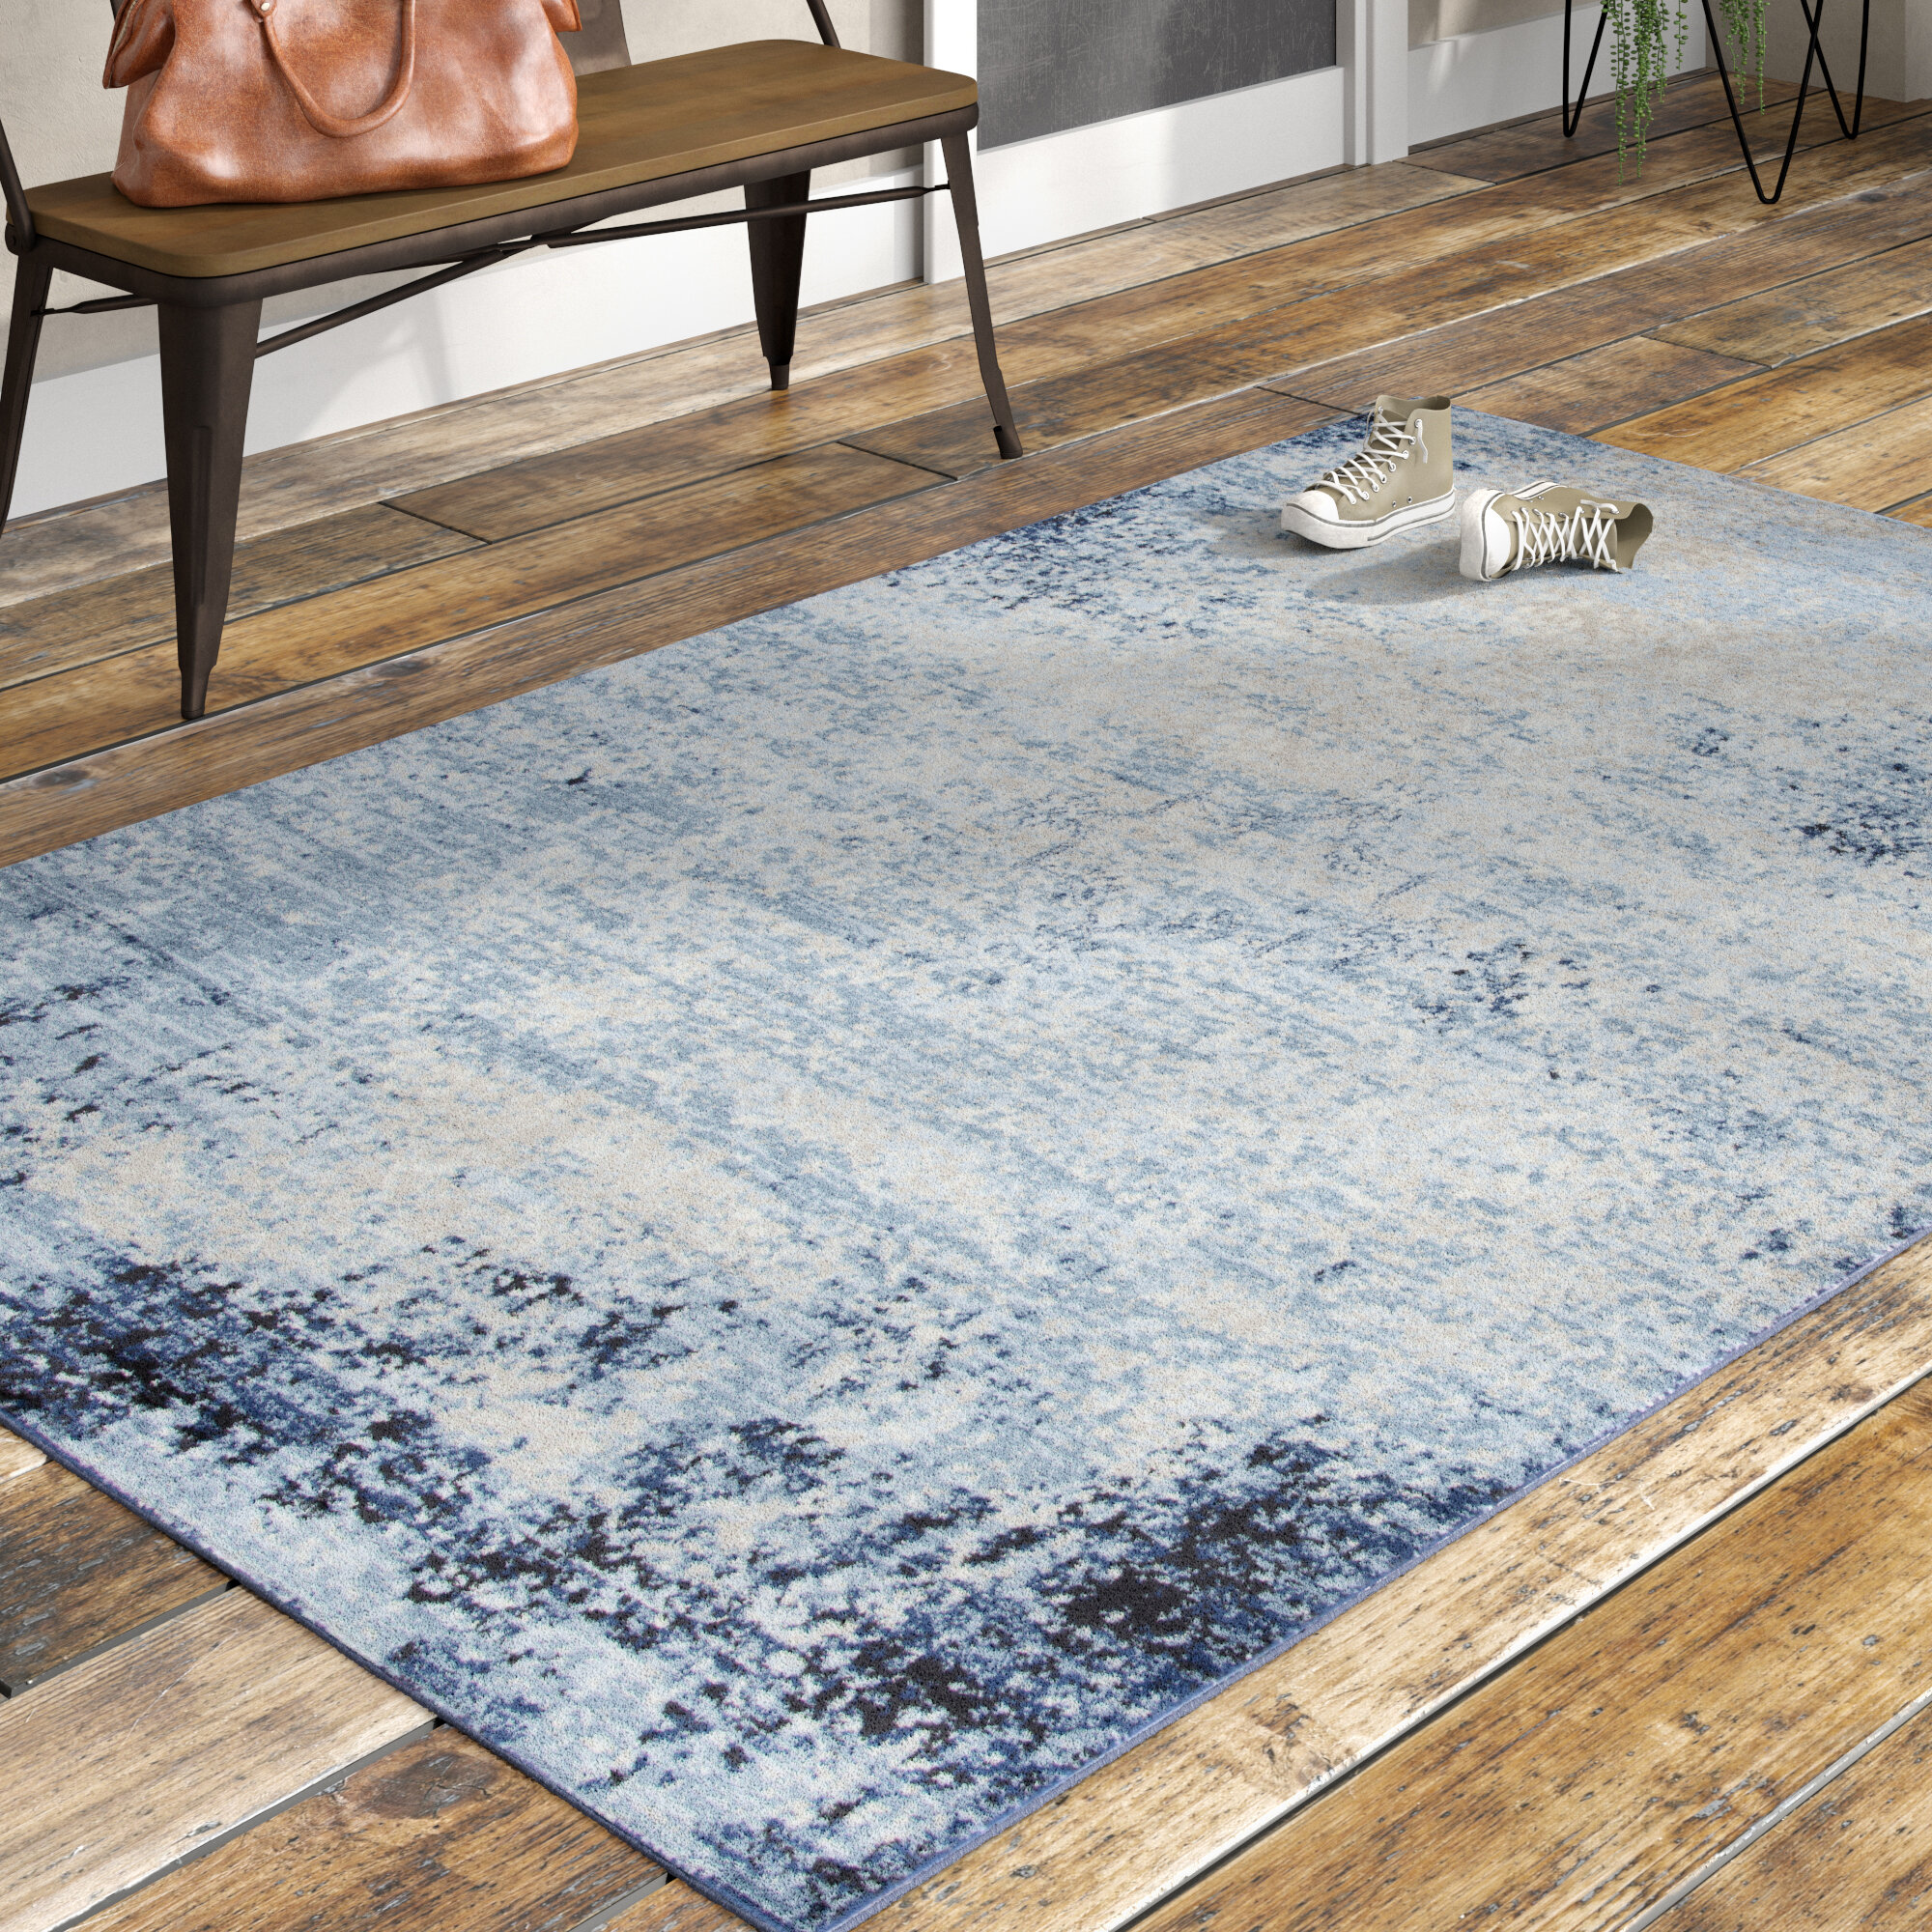 Williston Forge Lanette Blue Area Rug & Reviews | Wayfair